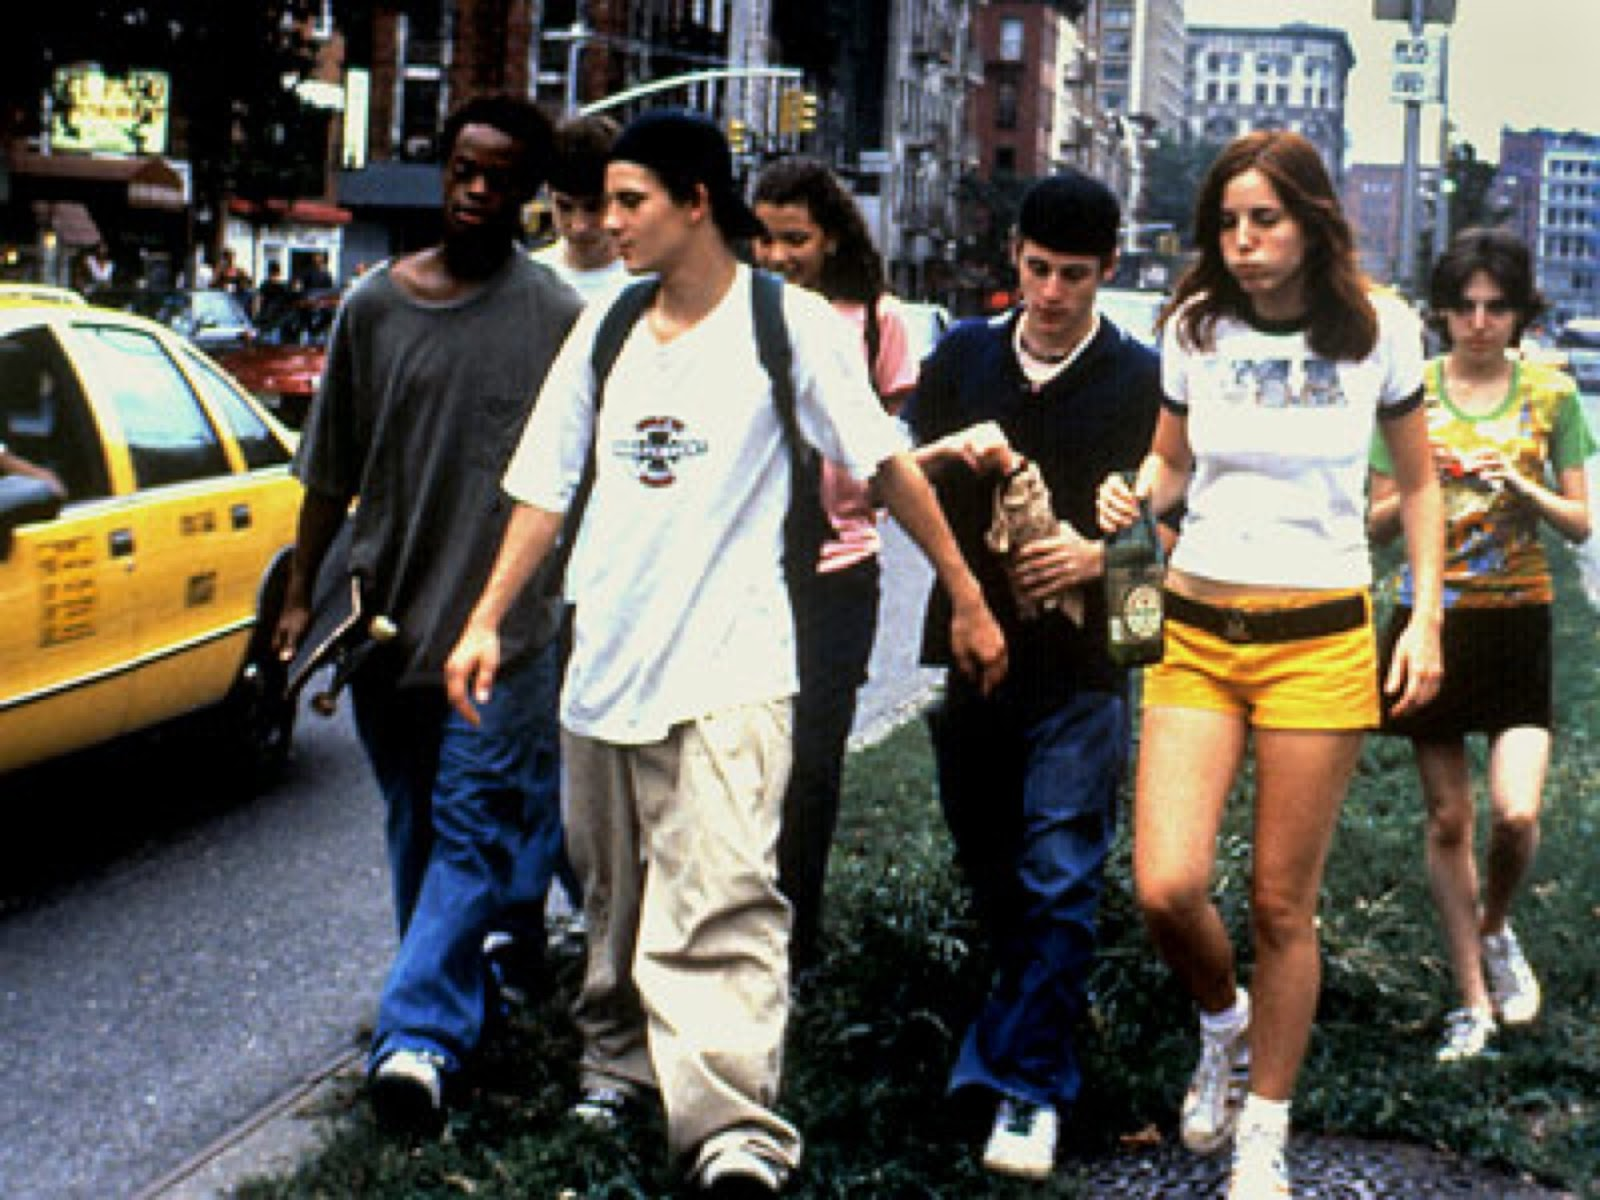 a teenagers life in new york in larry clarks film titled kids 79 movies that define new york city his movies reek of new york life — the few films scared parents more than kids, which follows teenagers doing very bad.